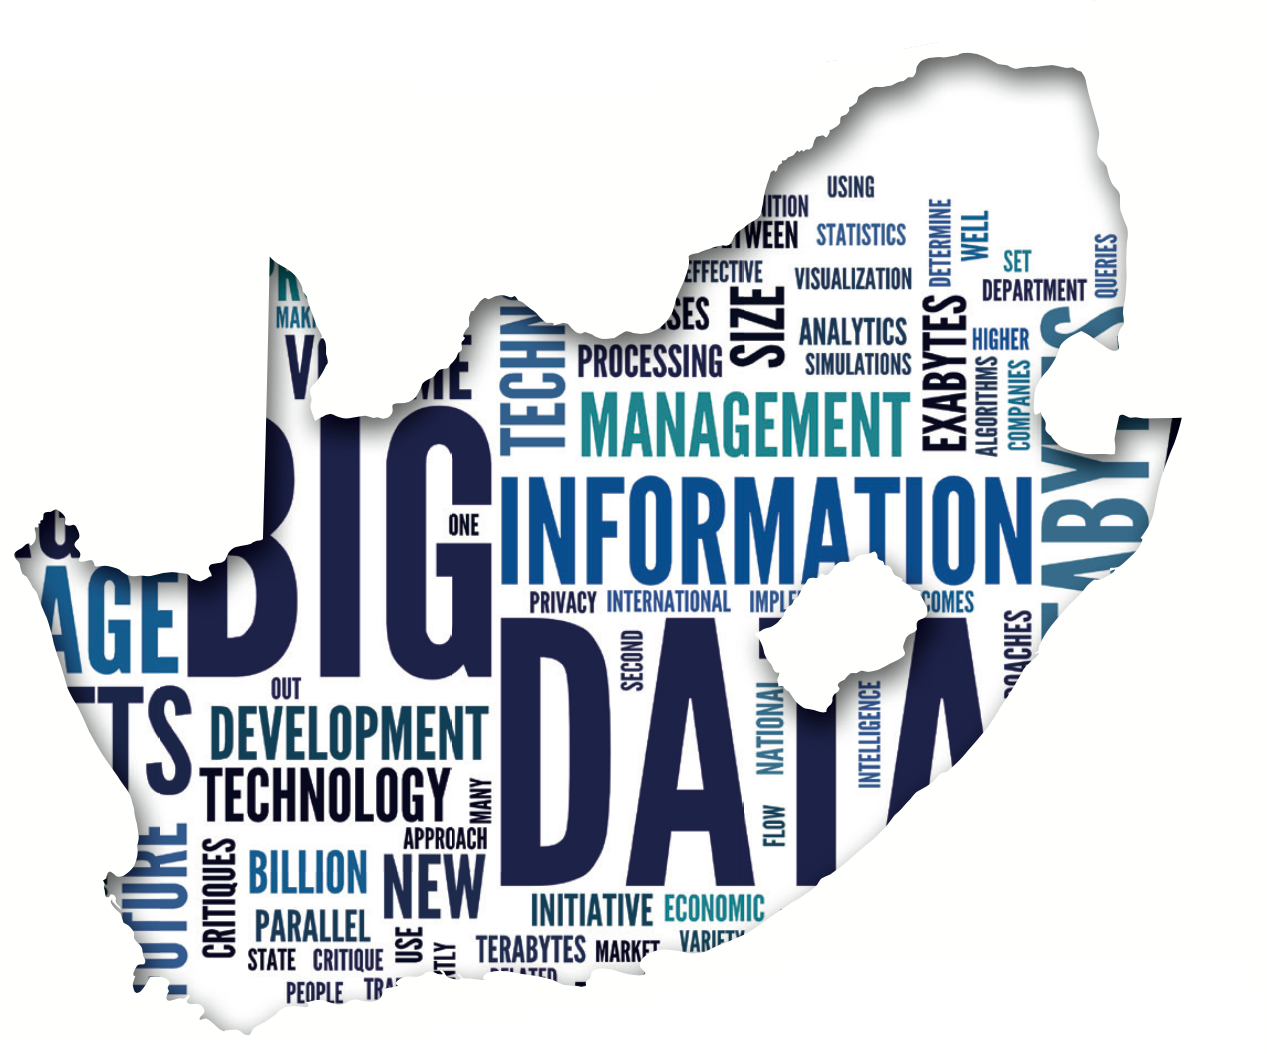 South Africa Map filled with Big Data terminology